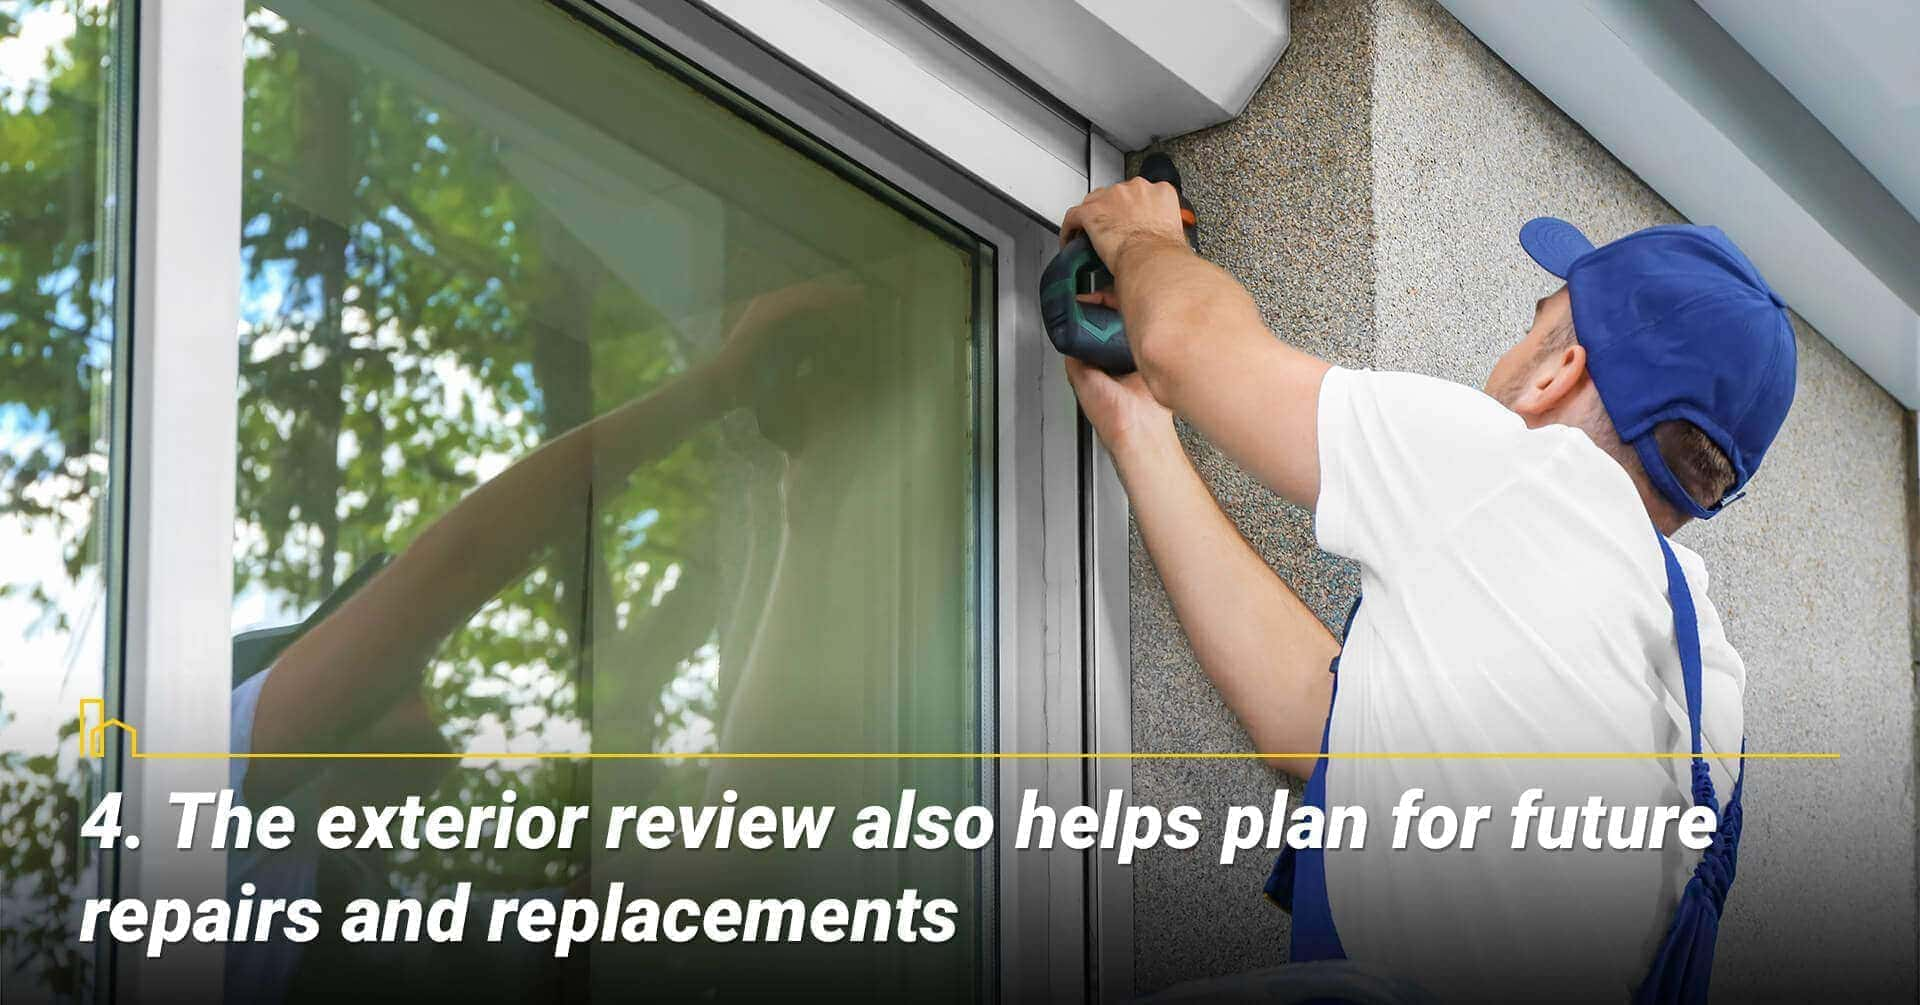 The exterior review also helps plan for future repairs and replacements